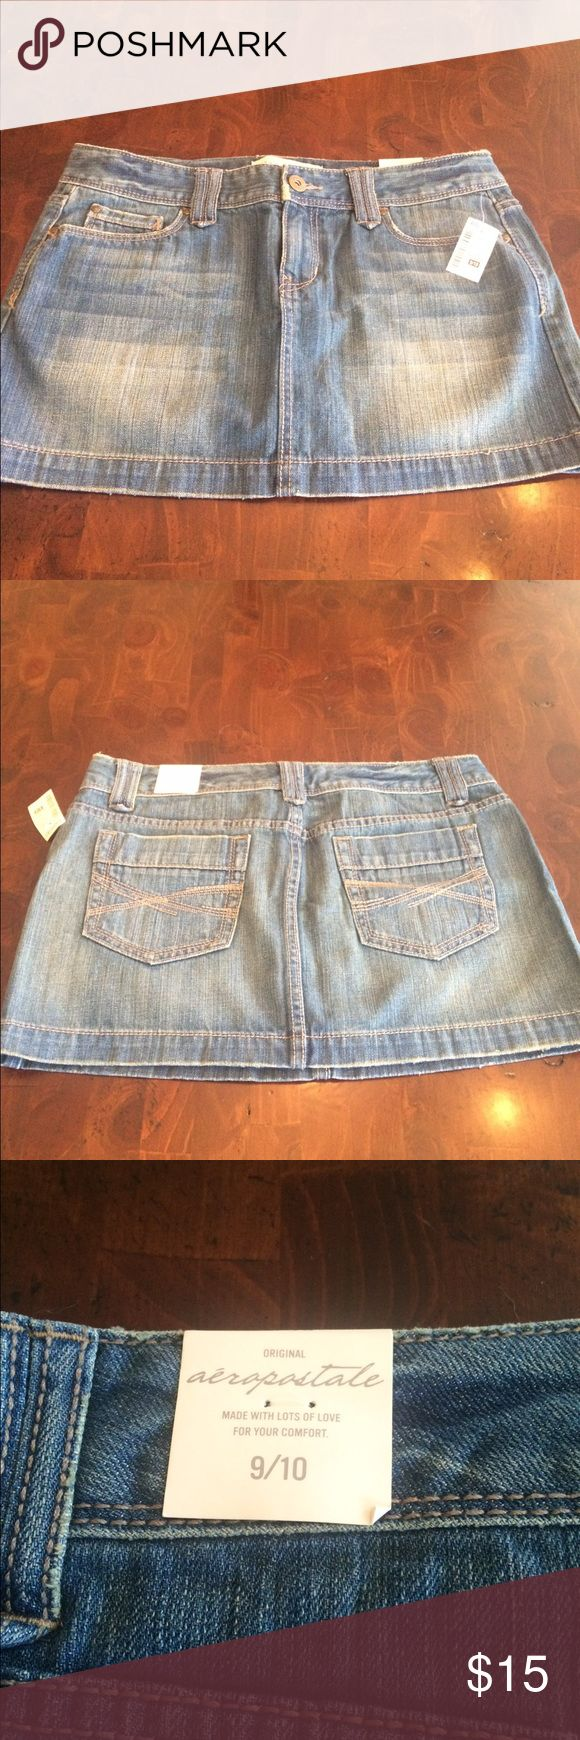 NWT 👍 Aeropostale Denim Skirt Perfect Condition - never worn (tags attached, as pictured). Denim skirt (in my opinion short/mini skirt).  Juniors Size 9/10. Aeropostale Skirts Mini